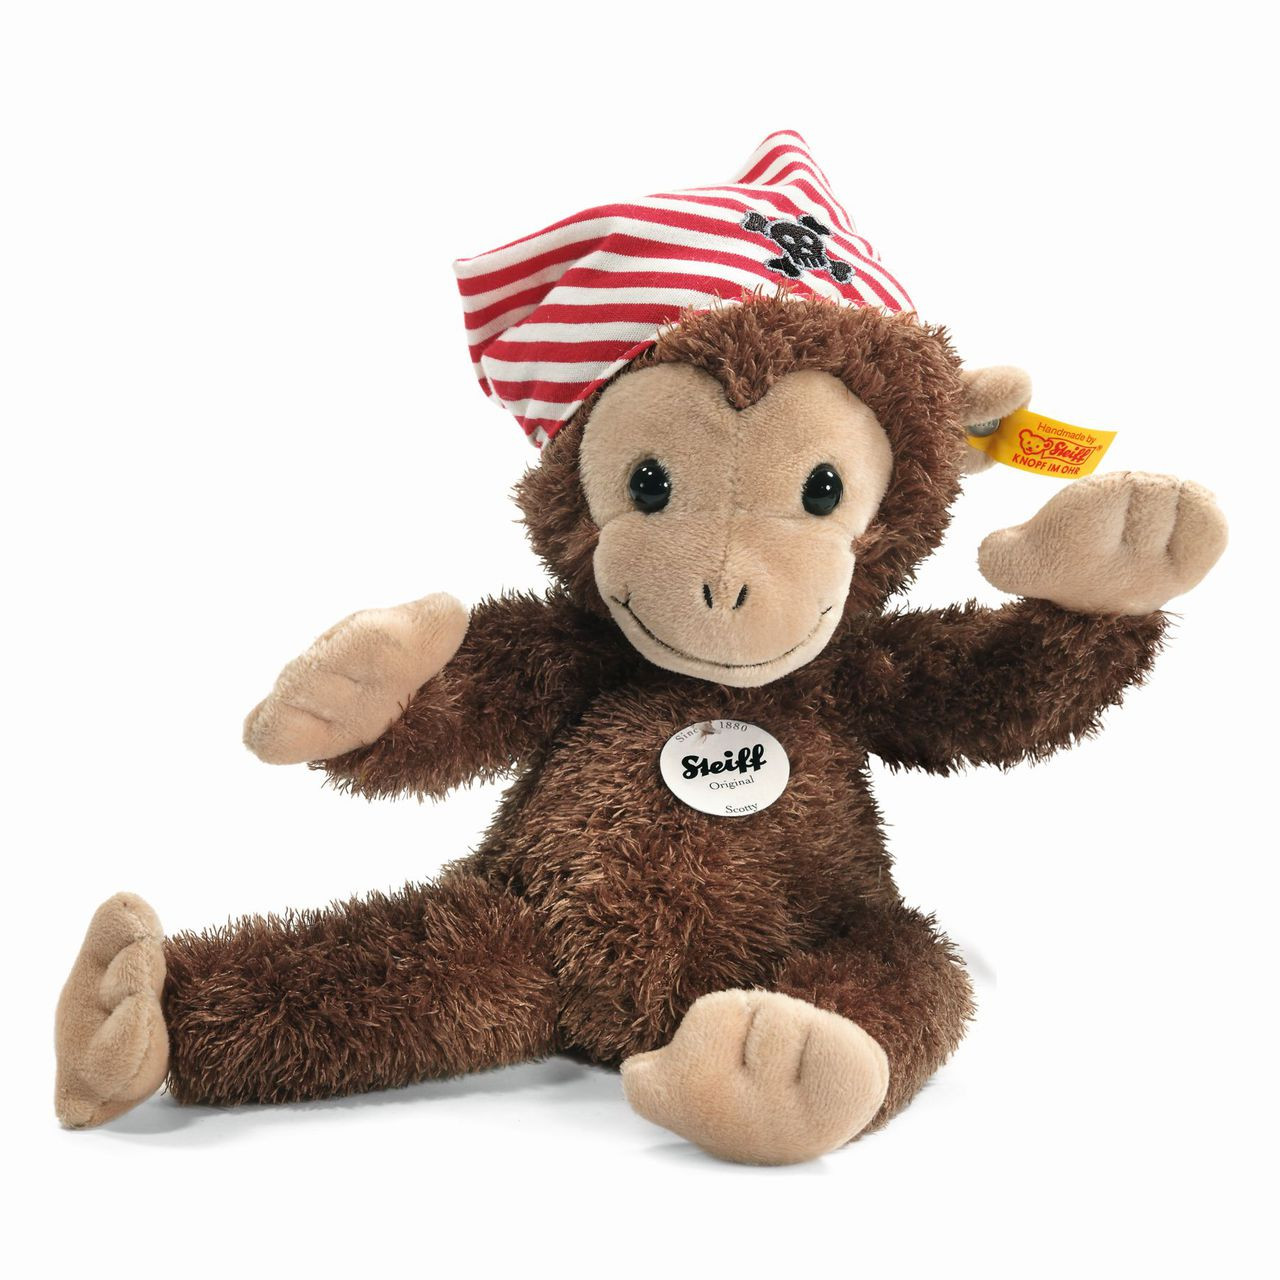 Steiff Jocko Monkey with Music Box for Baby with gift box EAN 240188